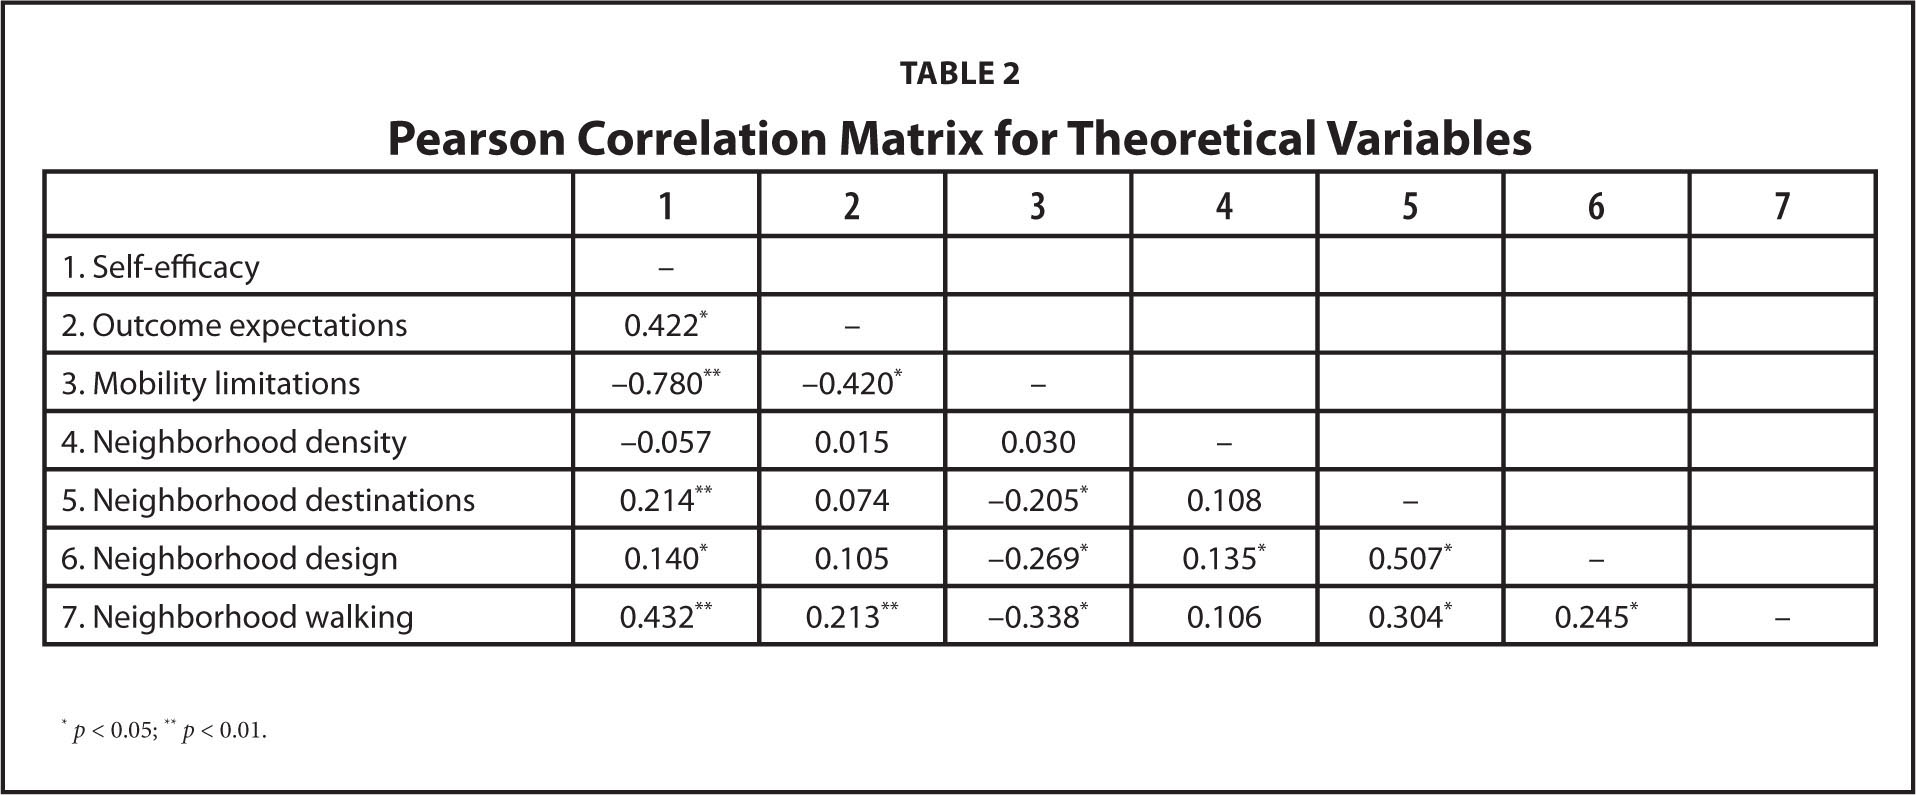 Pearson Correlation Matrix for Theoretical Variables